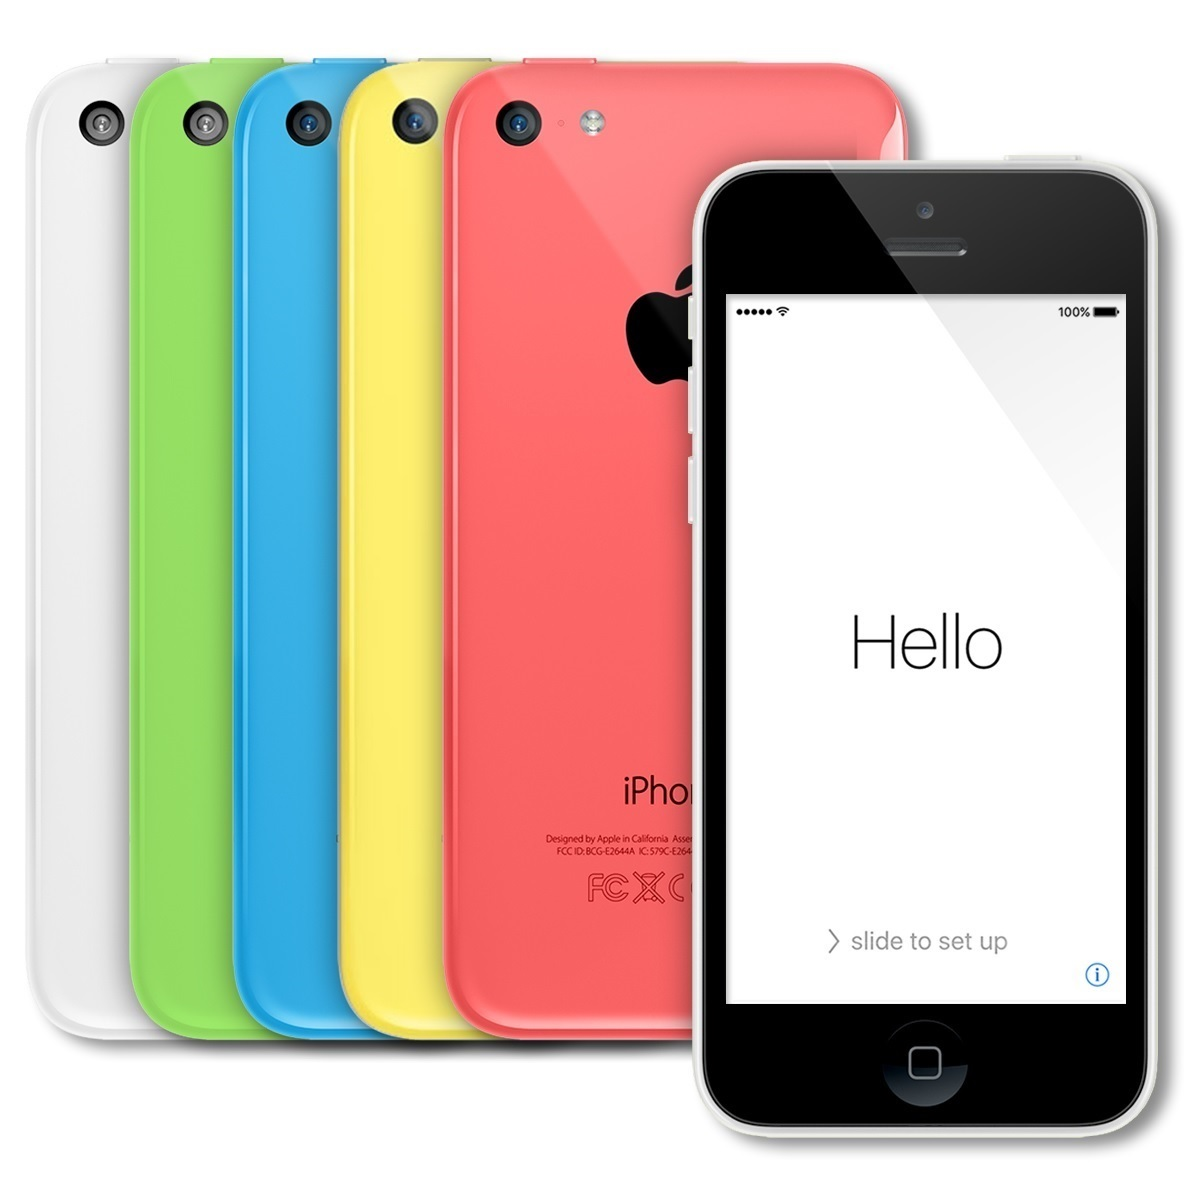 apple iphone 5c 16gb gsm unlocked smartphone a1532 att t mobile ebay. Black Bedroom Furniture Sets. Home Design Ideas